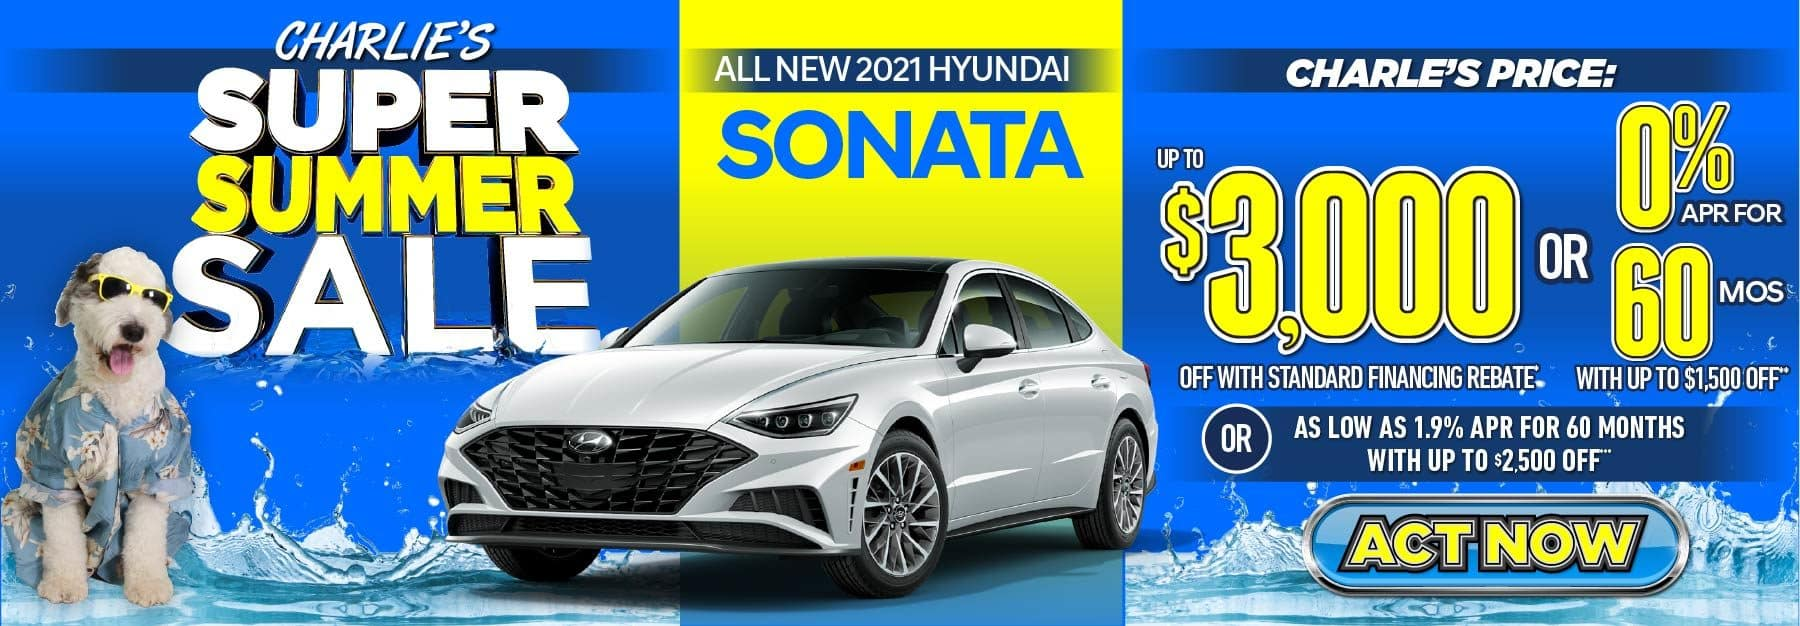 2021 Sonata up to $3000 off with standard financing rebate or 0% APR for 60 months with up to $1500 off or as low as 1.9% APR for 60 months with up to $2500 off. Act Now.